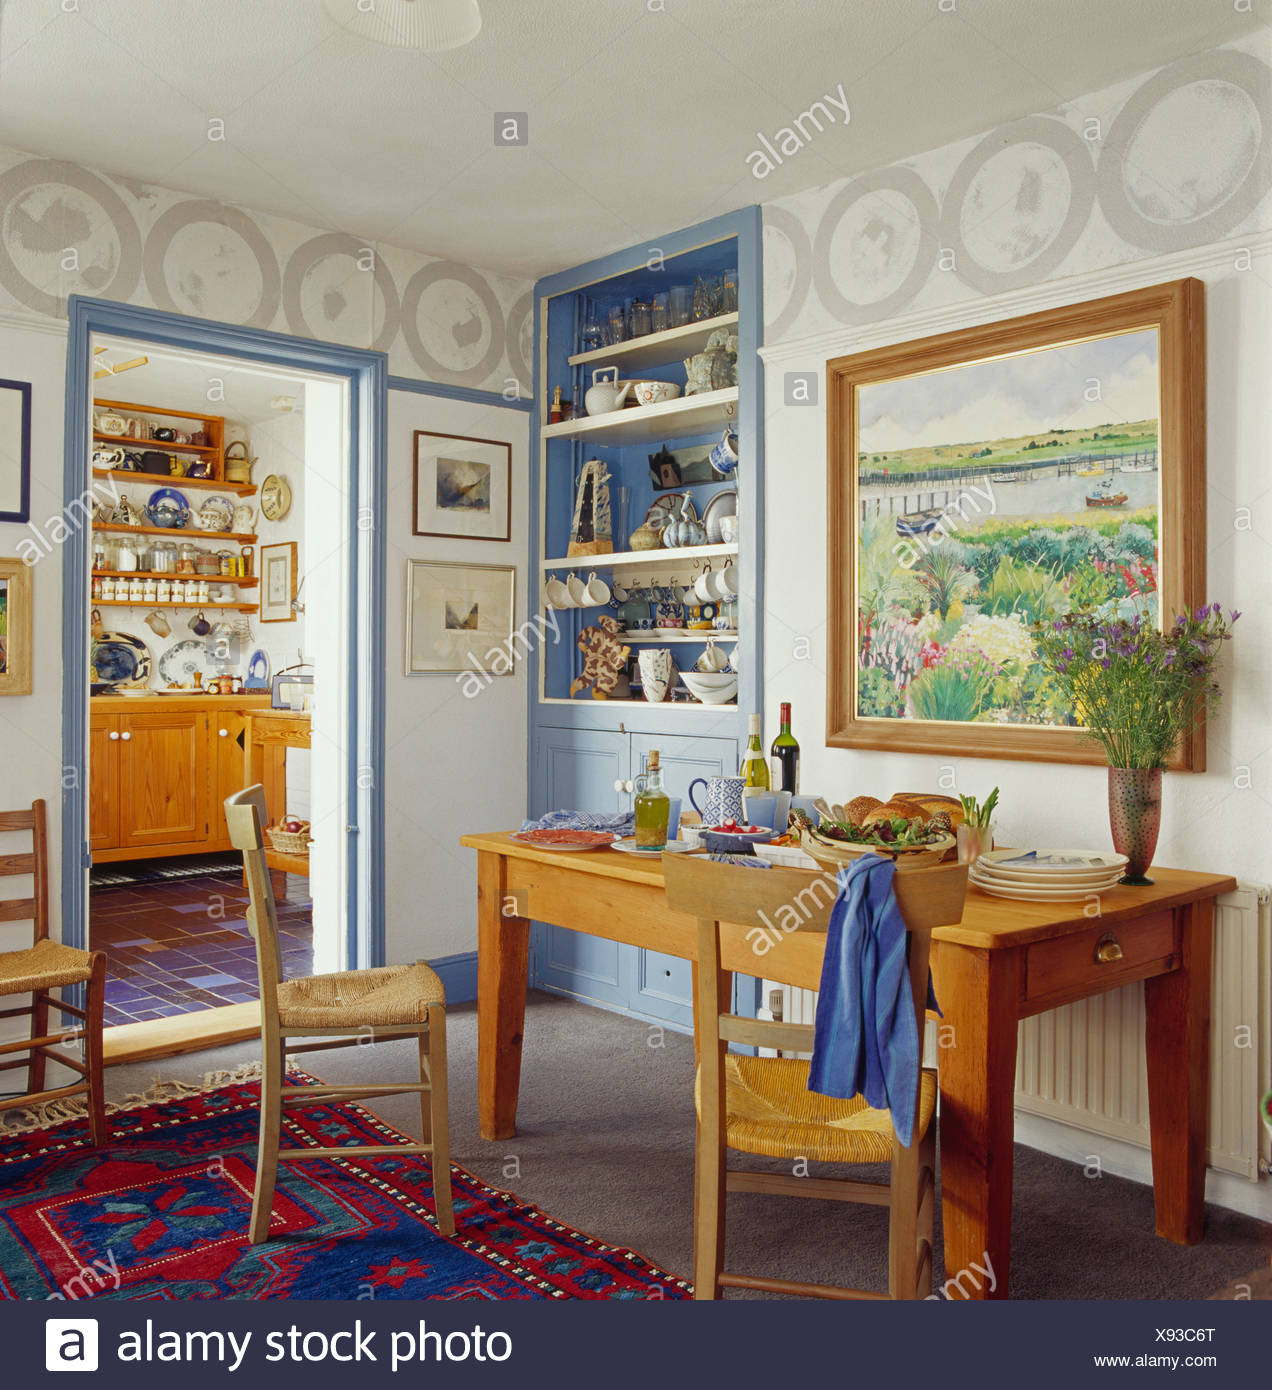 Large Picture On Wall Above Narrow Pine Table Set For Lunch In Cottage Dining  Room With Blue Alcove Shelves And Painted Border